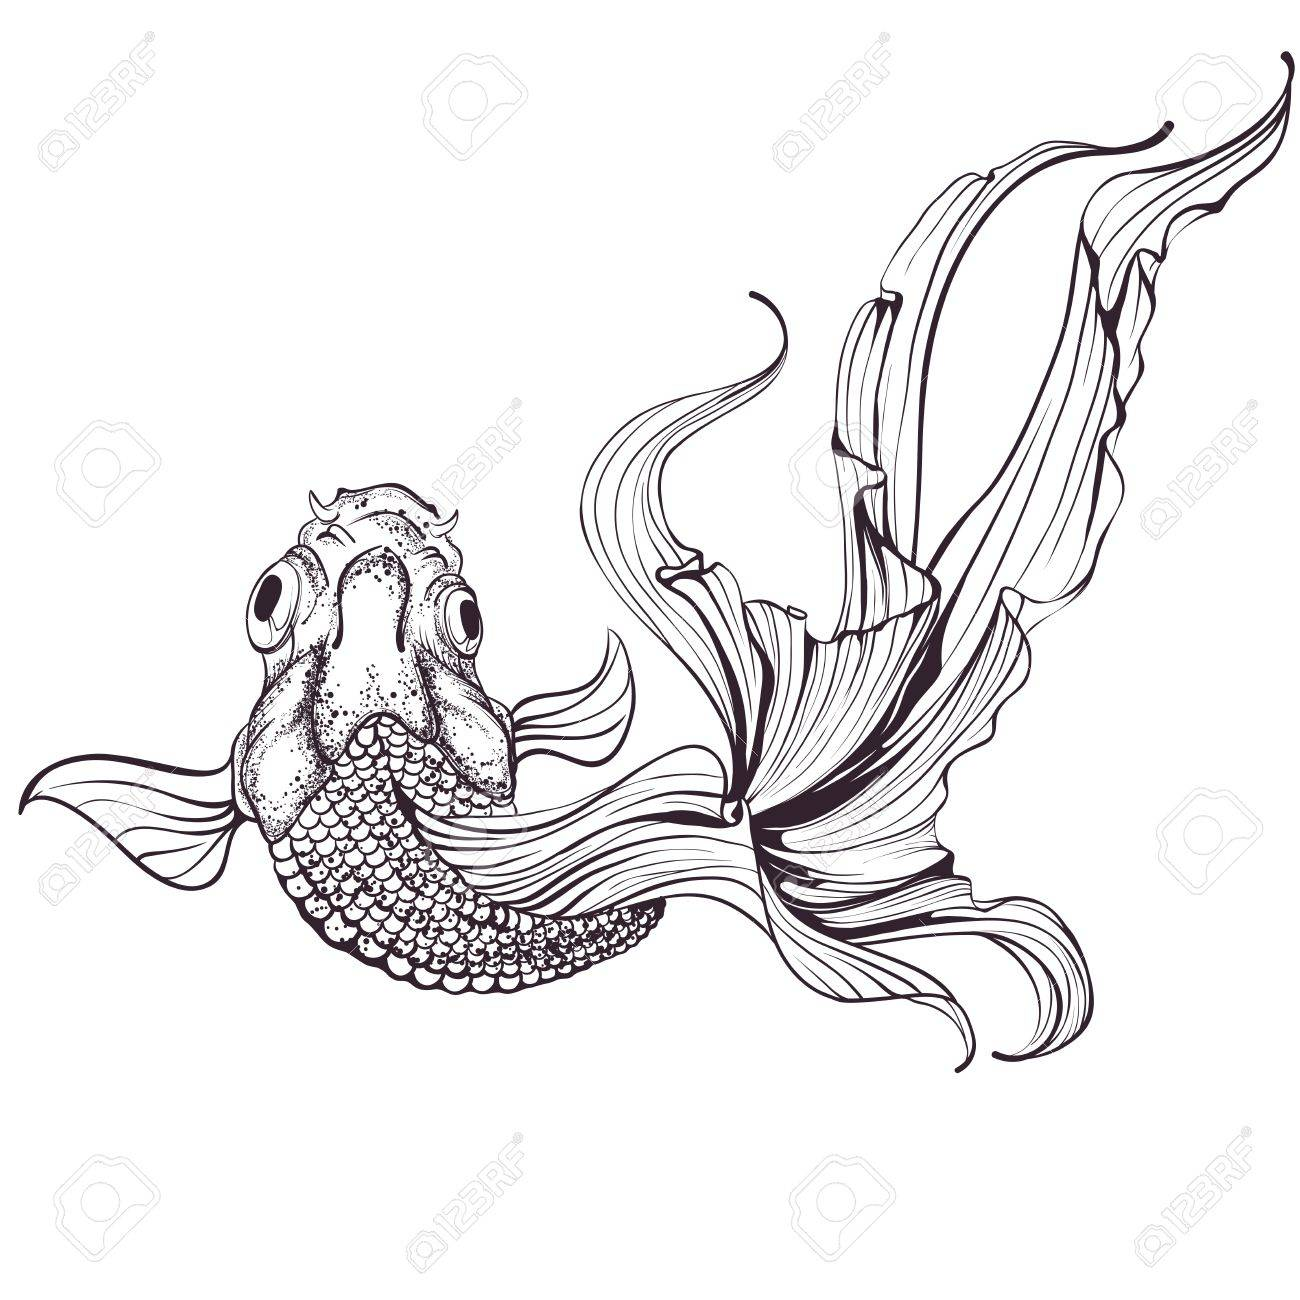 1300x1300 Goldfish Sketch On White Background Royalty Free Cliparts, Vectors